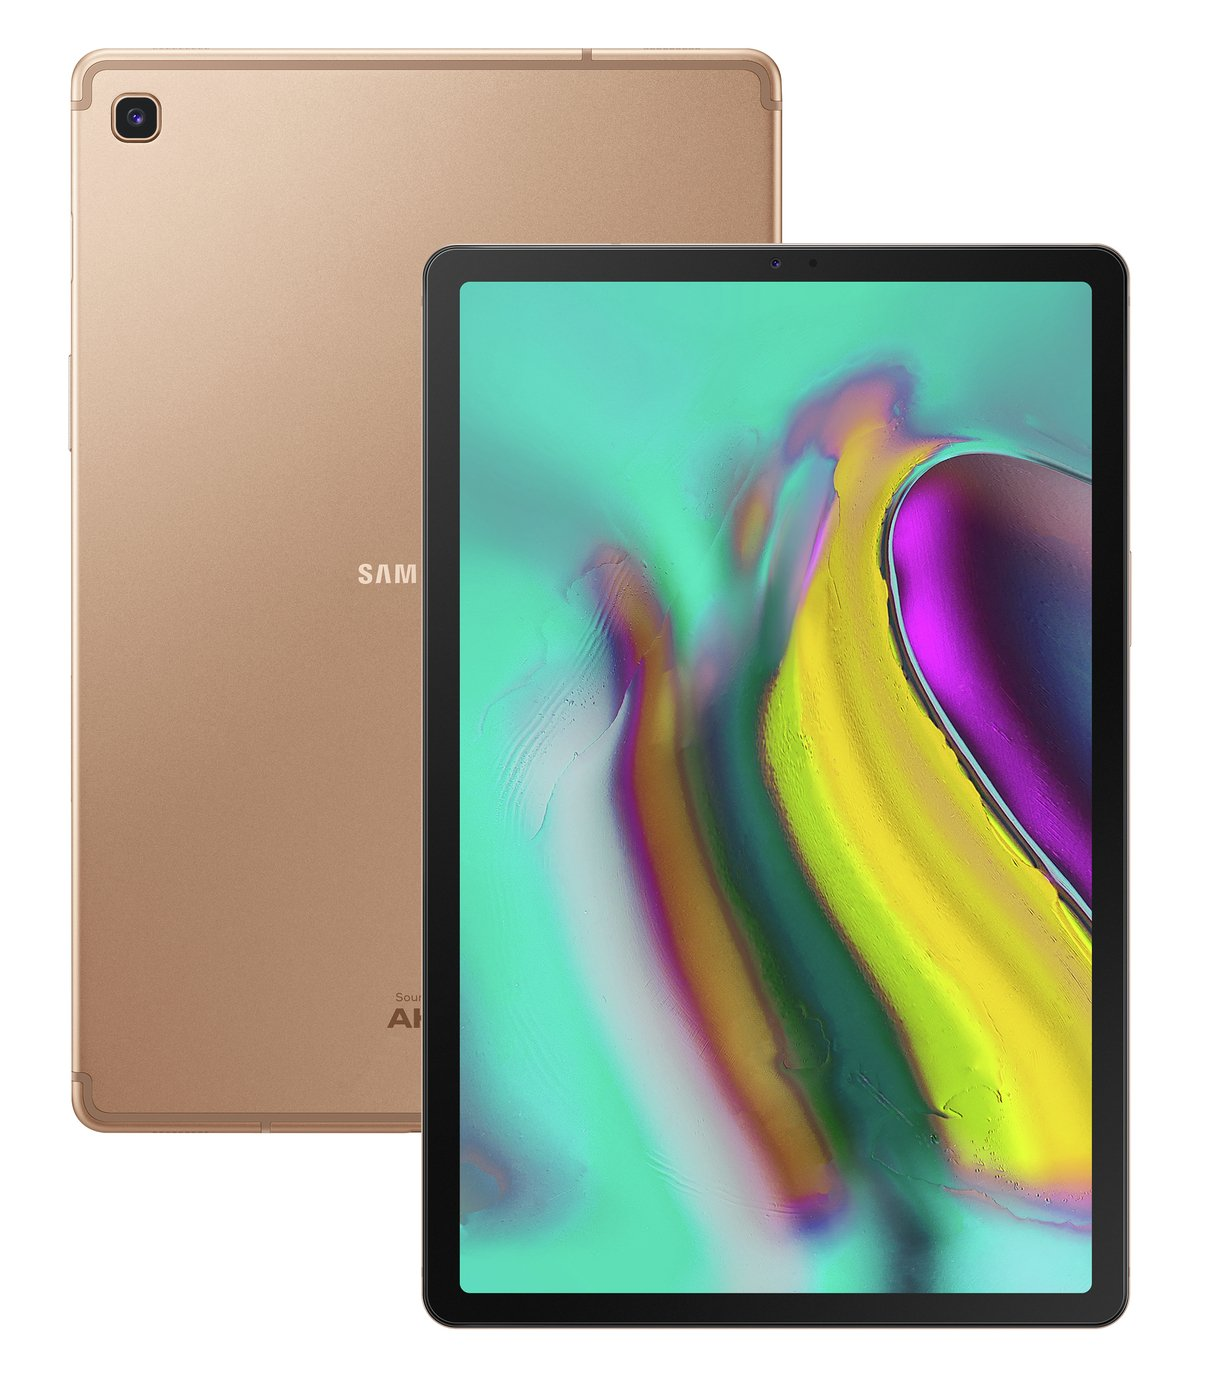 Samsung Tab S5e 10.5in 128GB Wi-Fi Cellular LTE Tablet -Gold